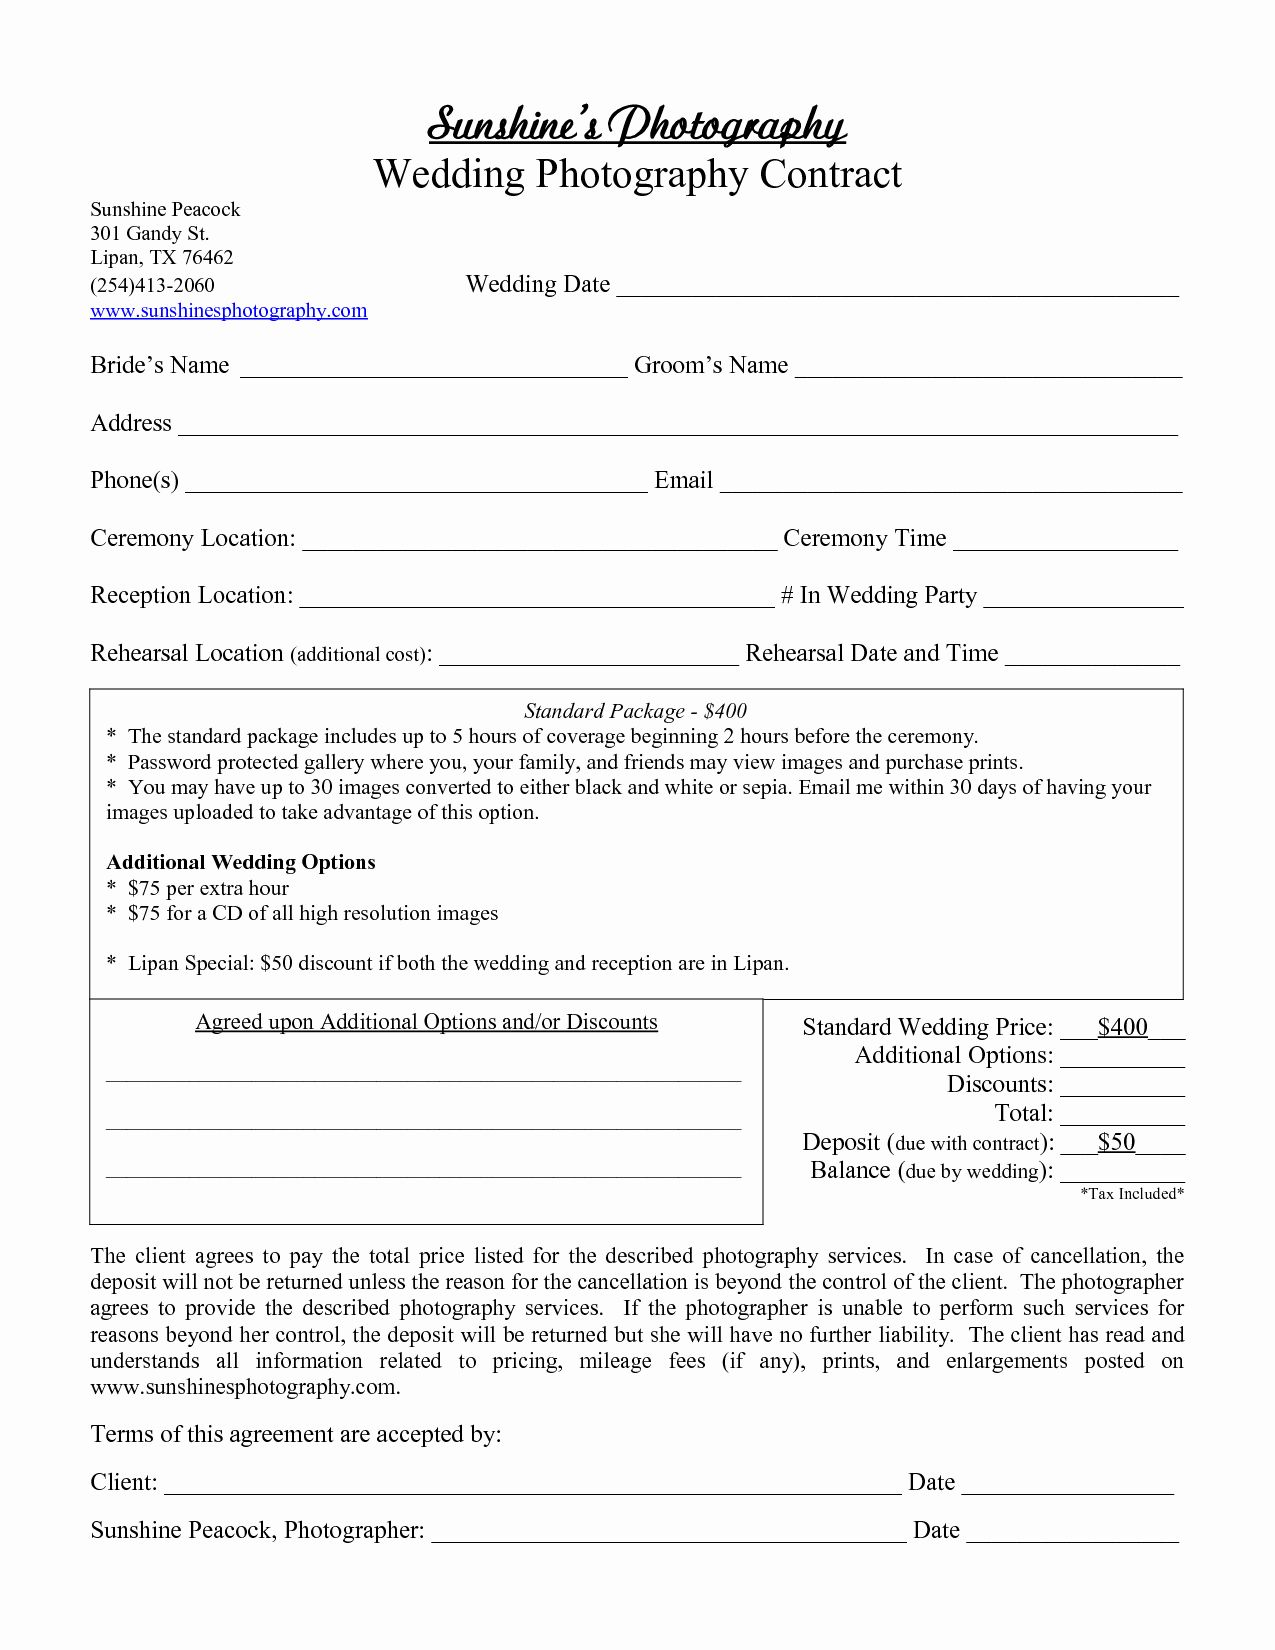 Free Wedding Photography Contract Template Luxury Graphy